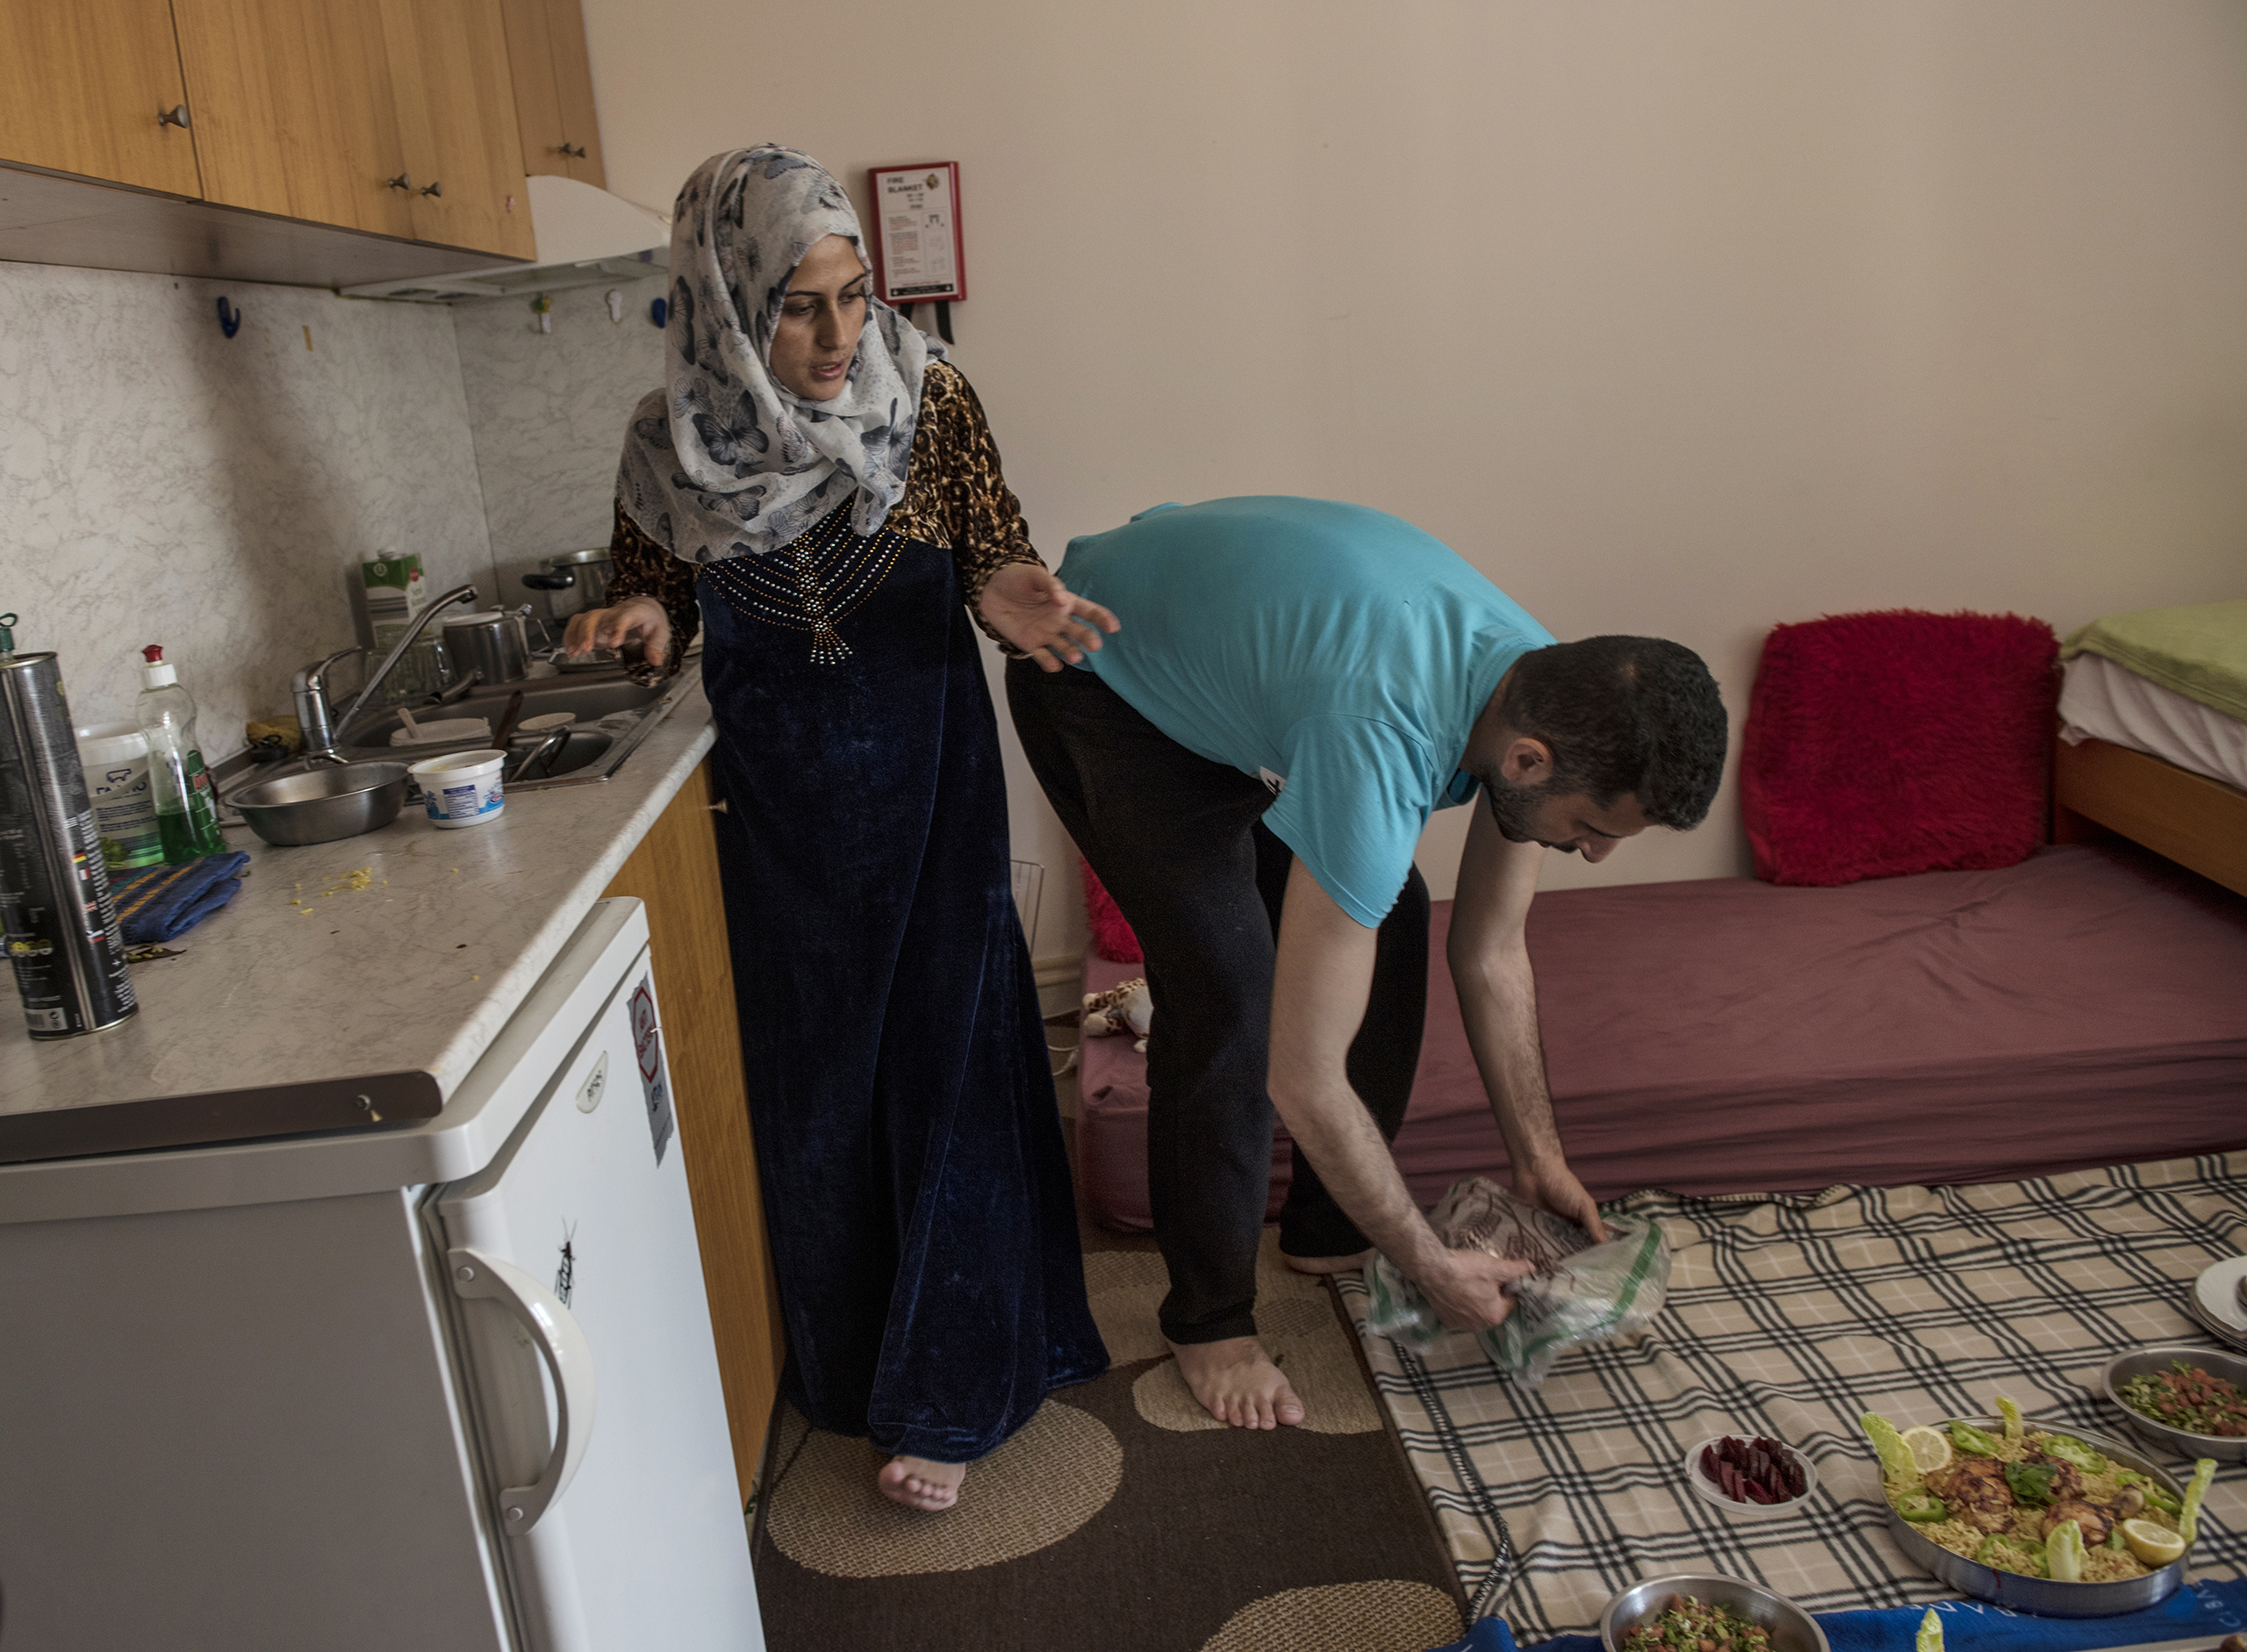 Noor Al Talaa, 22, and her husband, Yousuf Arsan, 27, prepare lunch at home with baby Rahaf, almost 6 months, at an apartment in Sidros, outside of Thessaloniki, Greece, March 28, 2017.